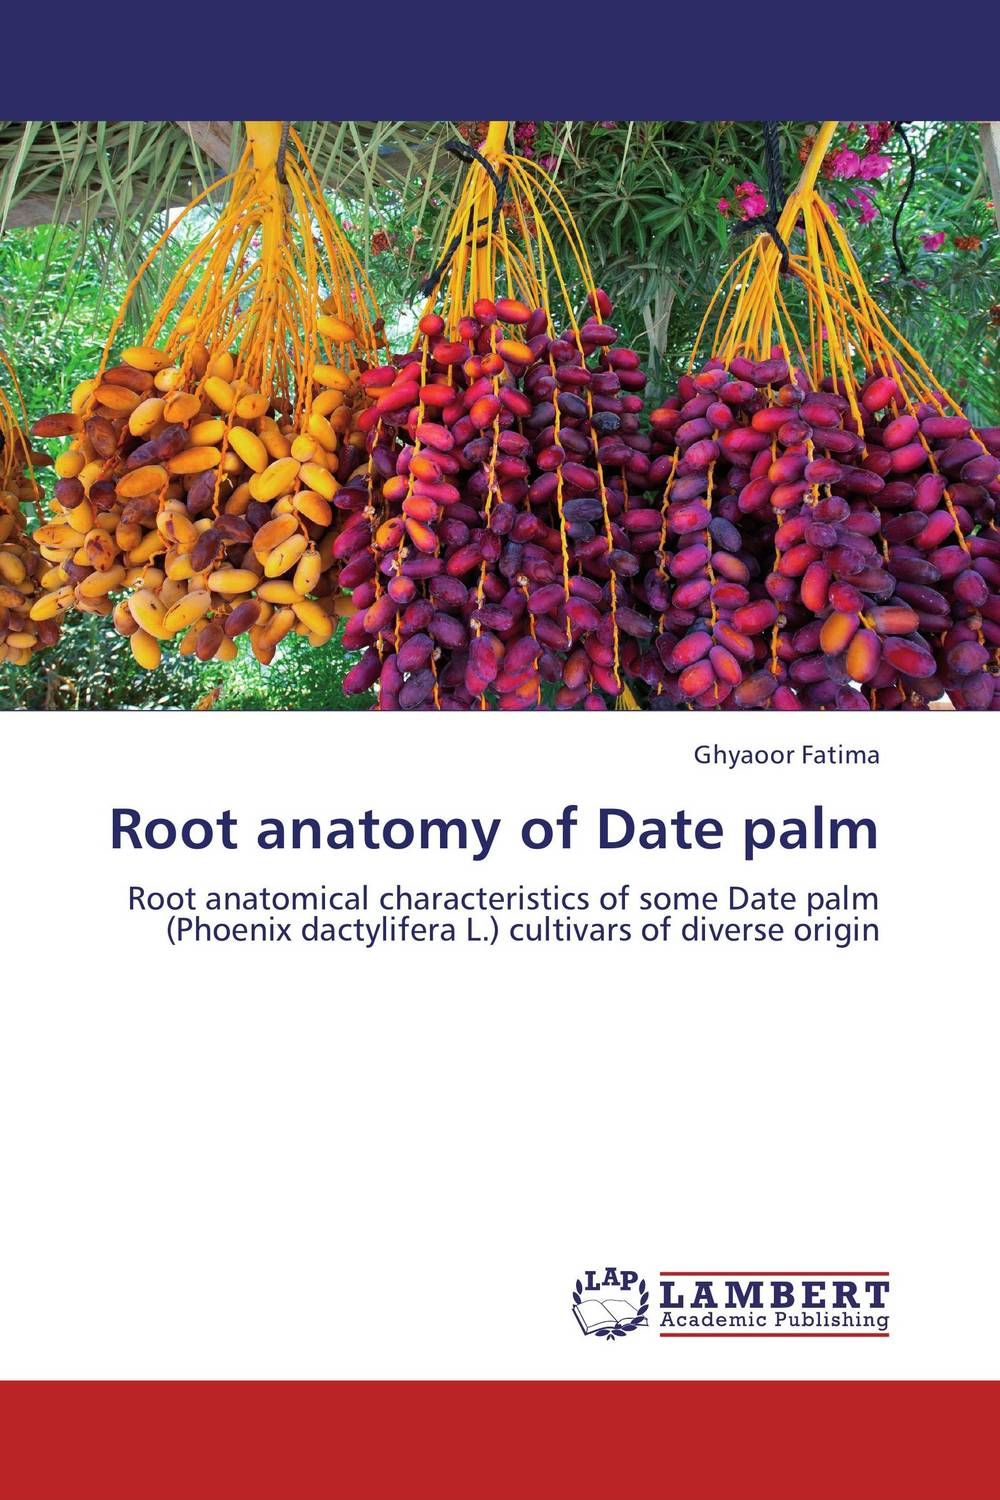 Root anatomy of Date palm the teeth with root canal students to practice root canal preparation and filling actually